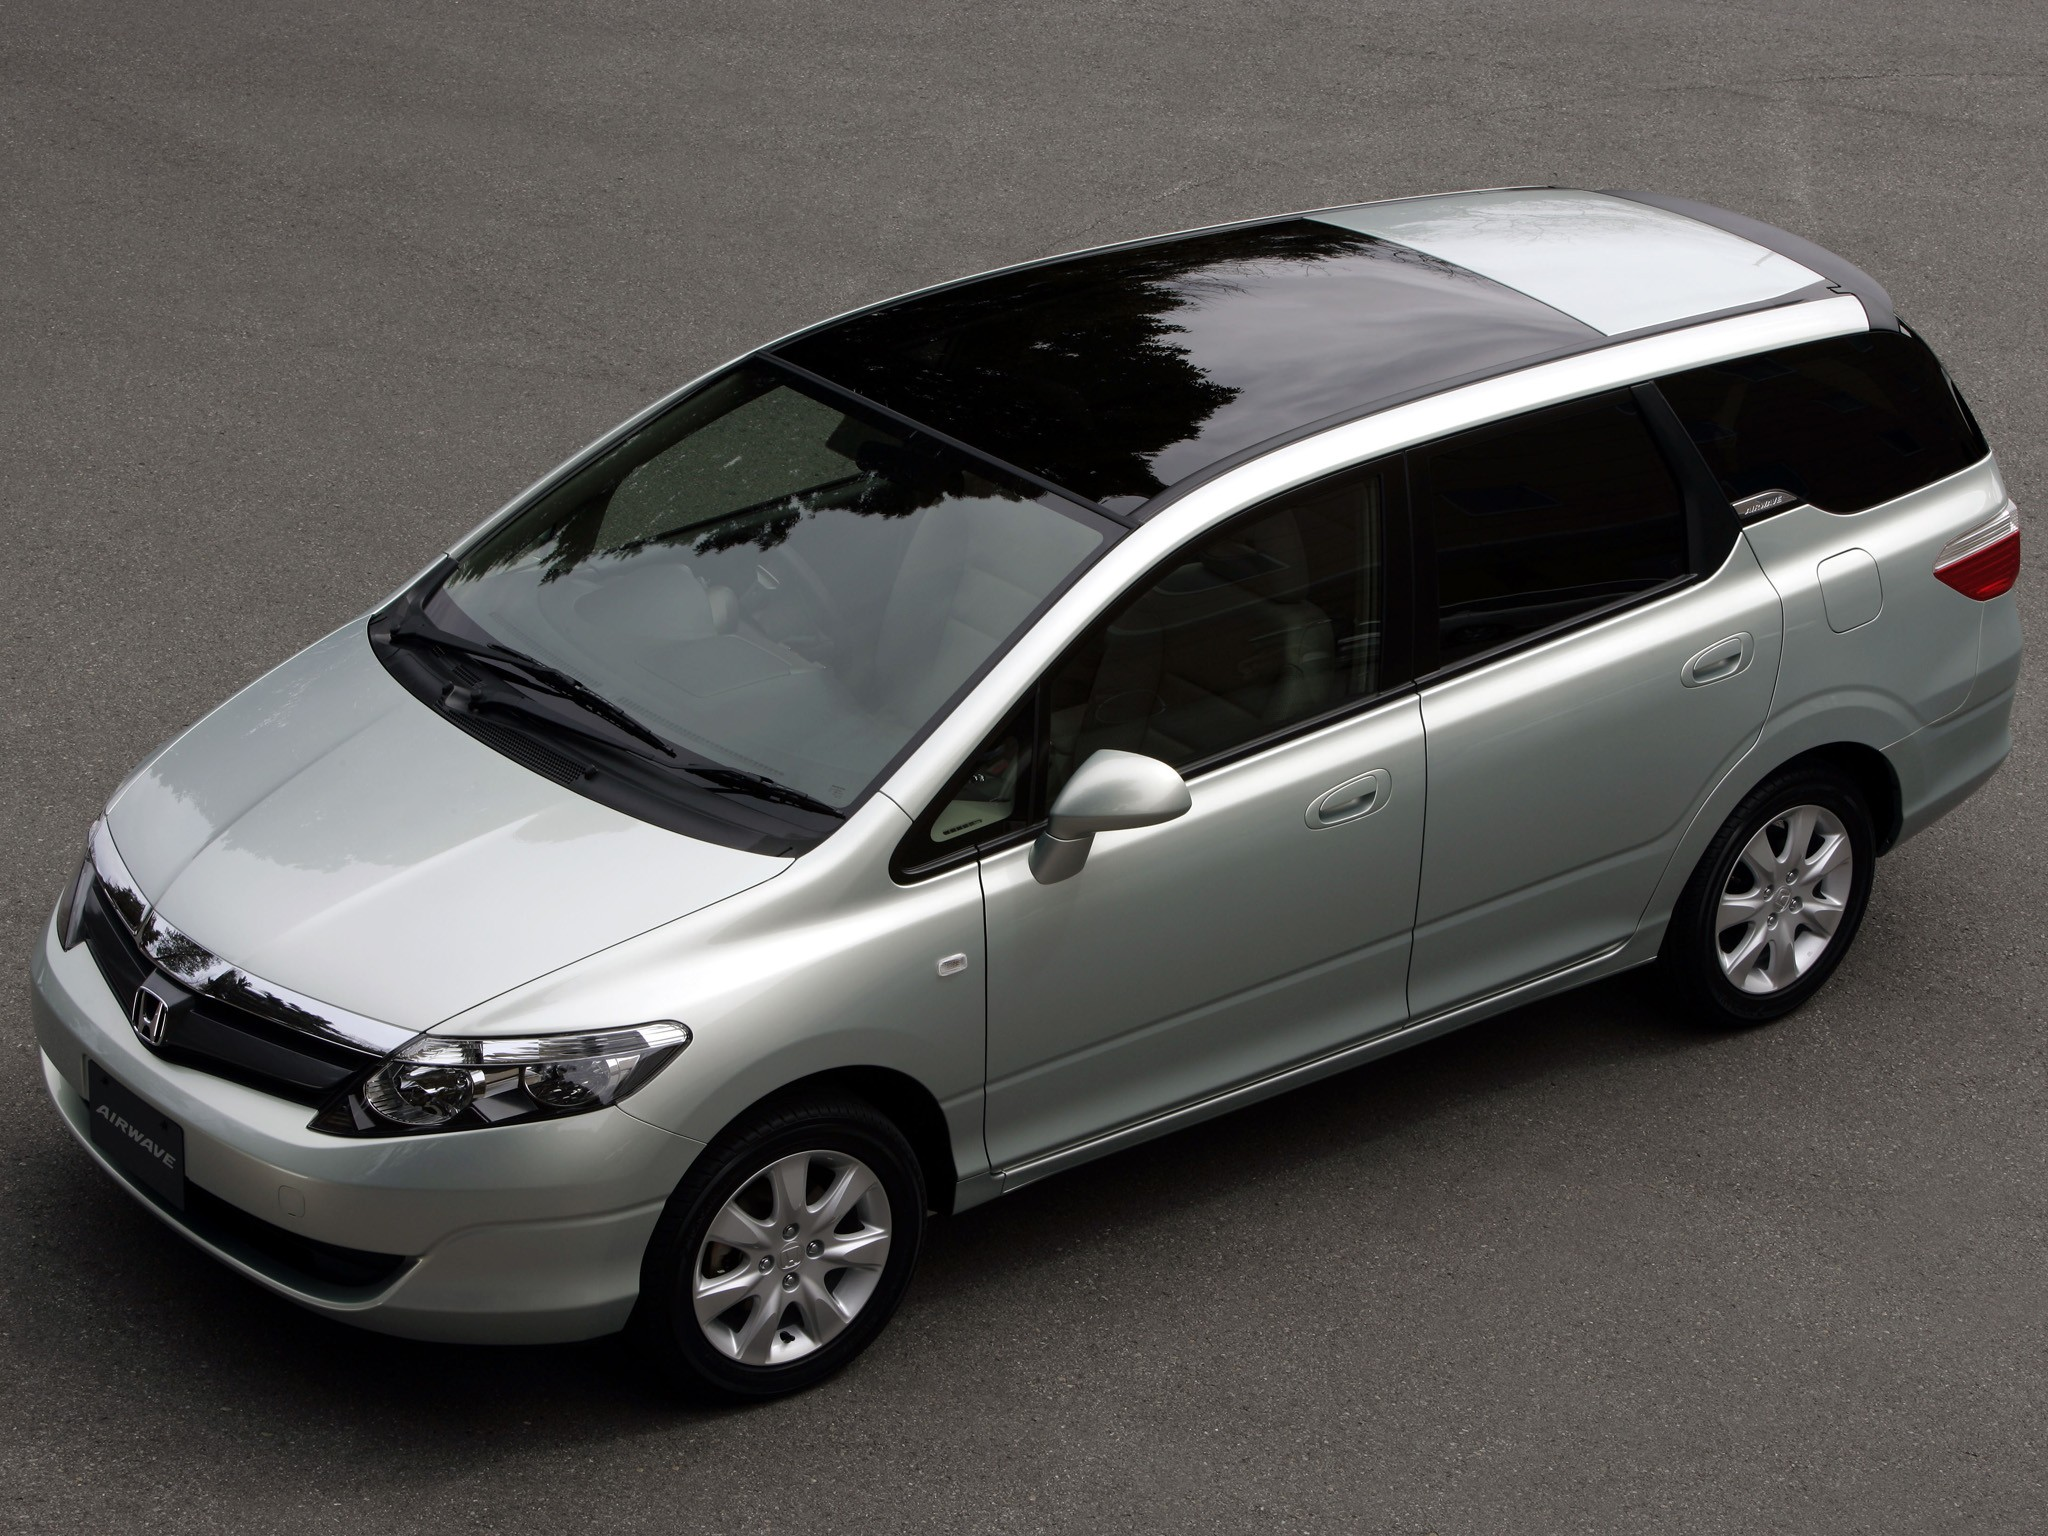 7 Seater Seat Cars >> HONDA Airwave specs & photos - 2005, 2006, 2007, 2008, 2009, 2010 - autoevolution